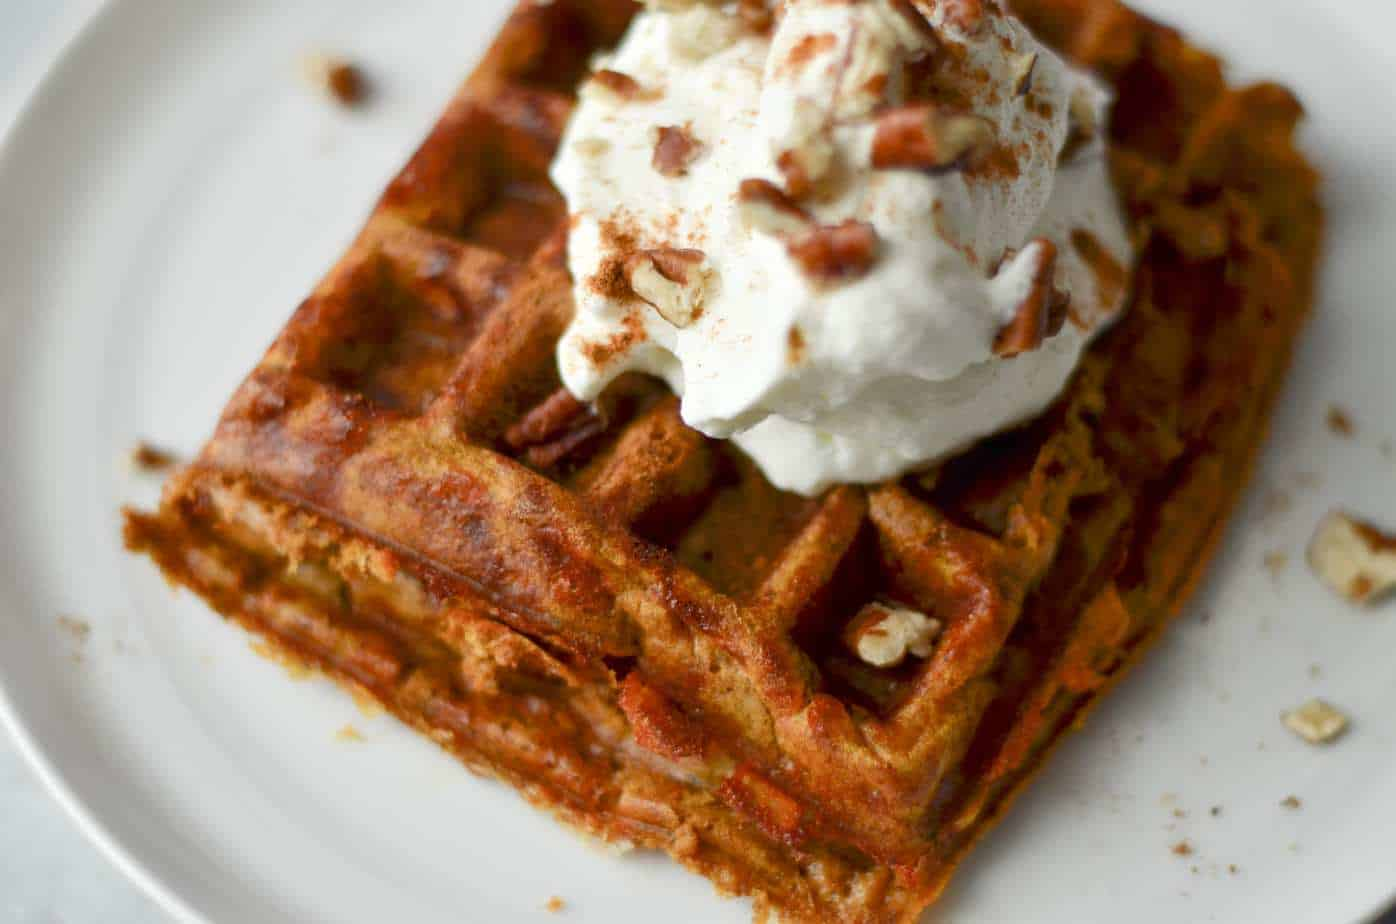 Pumpkin pie chaffle with whipped cream and pecans on top